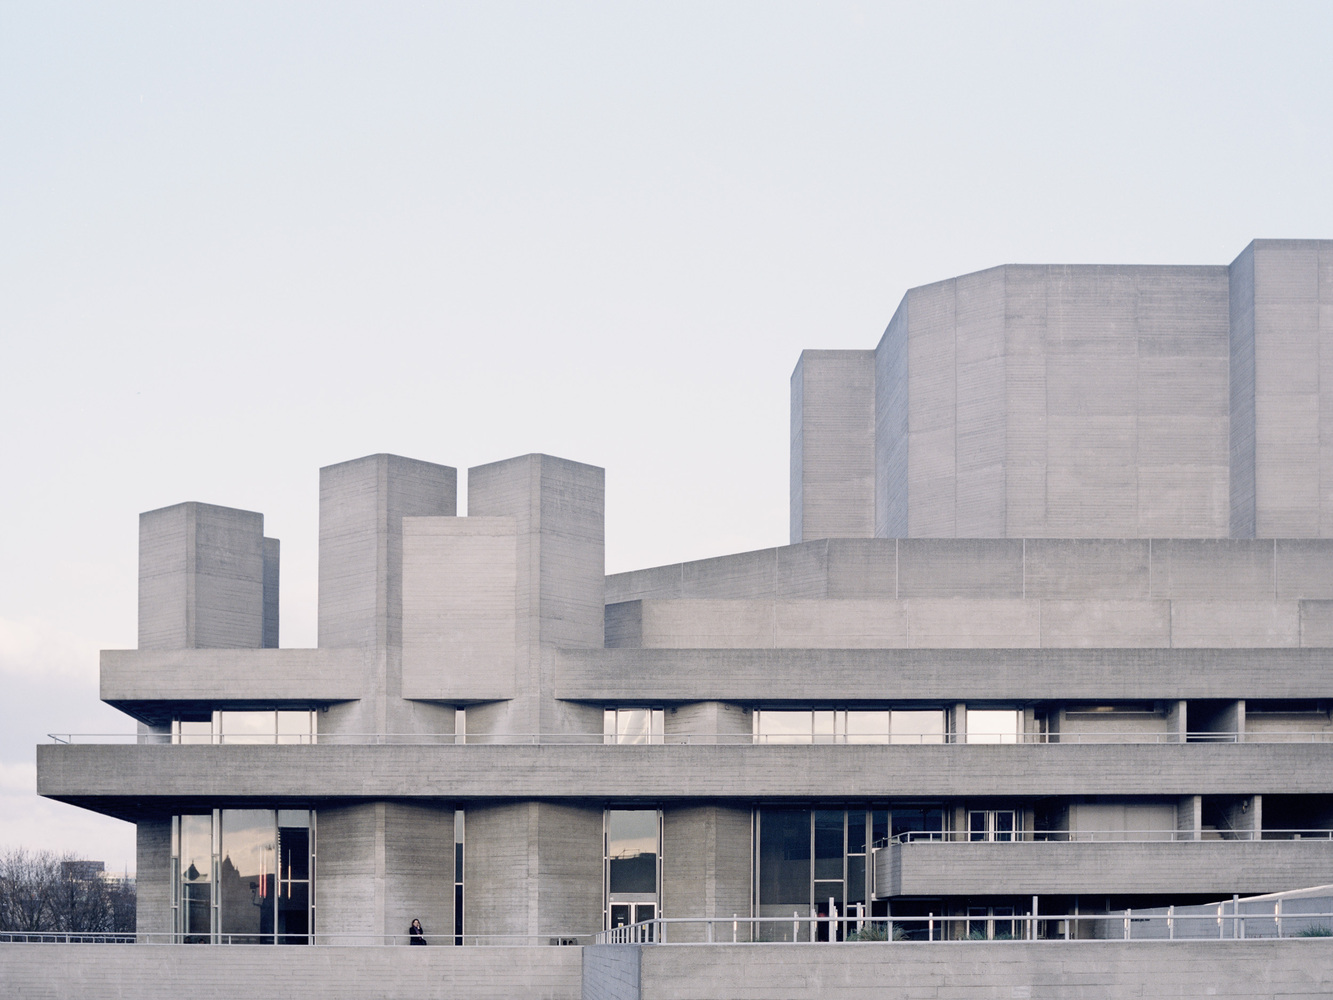 Utopia-London-Photography-Brutalist-Architecture-IGS-Magazine-21